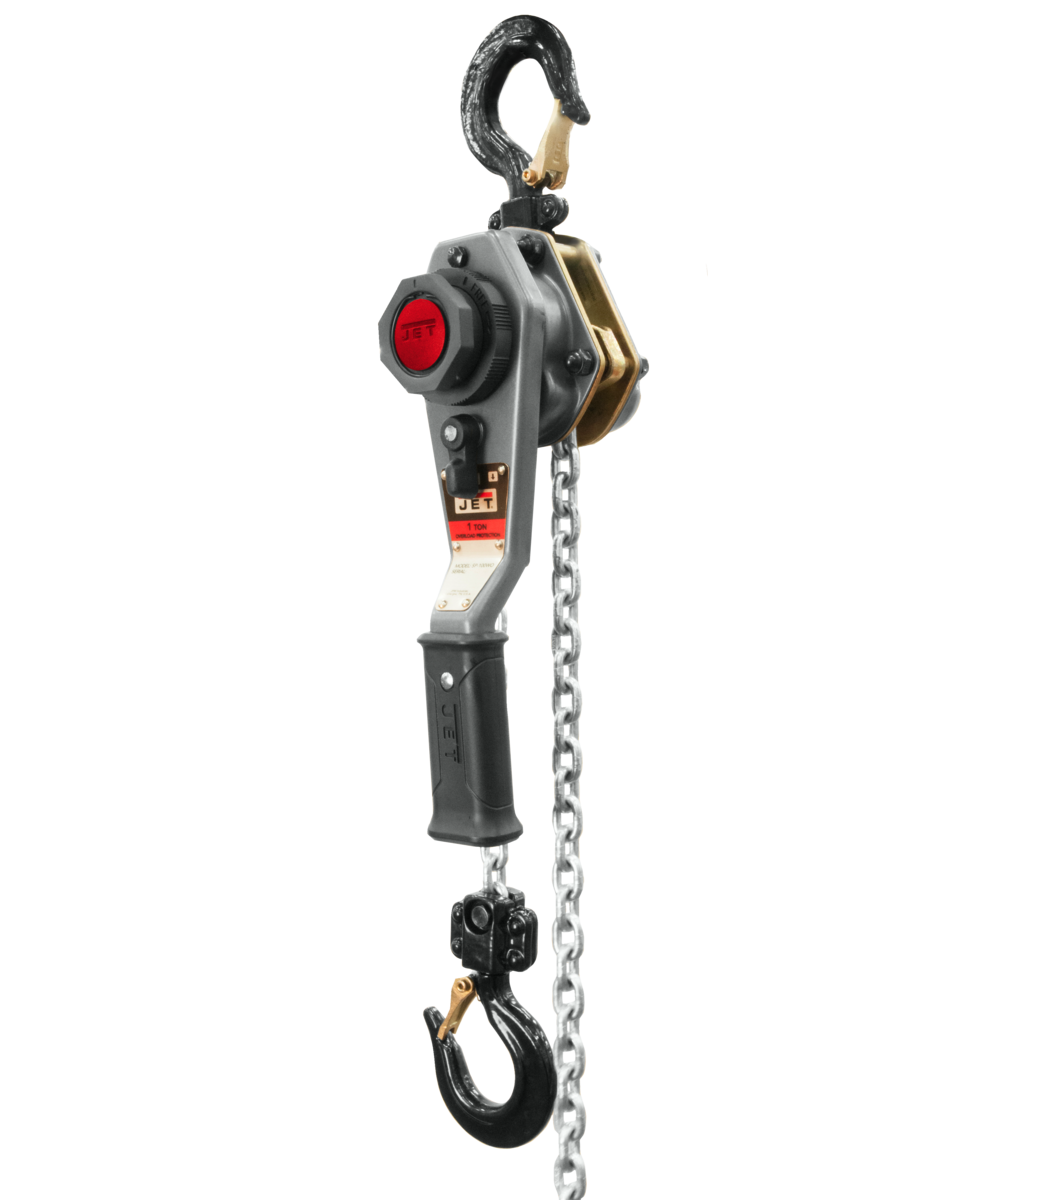 JLH Series 1 Ton Lever Hoist, 15' Lift with Overload Protection